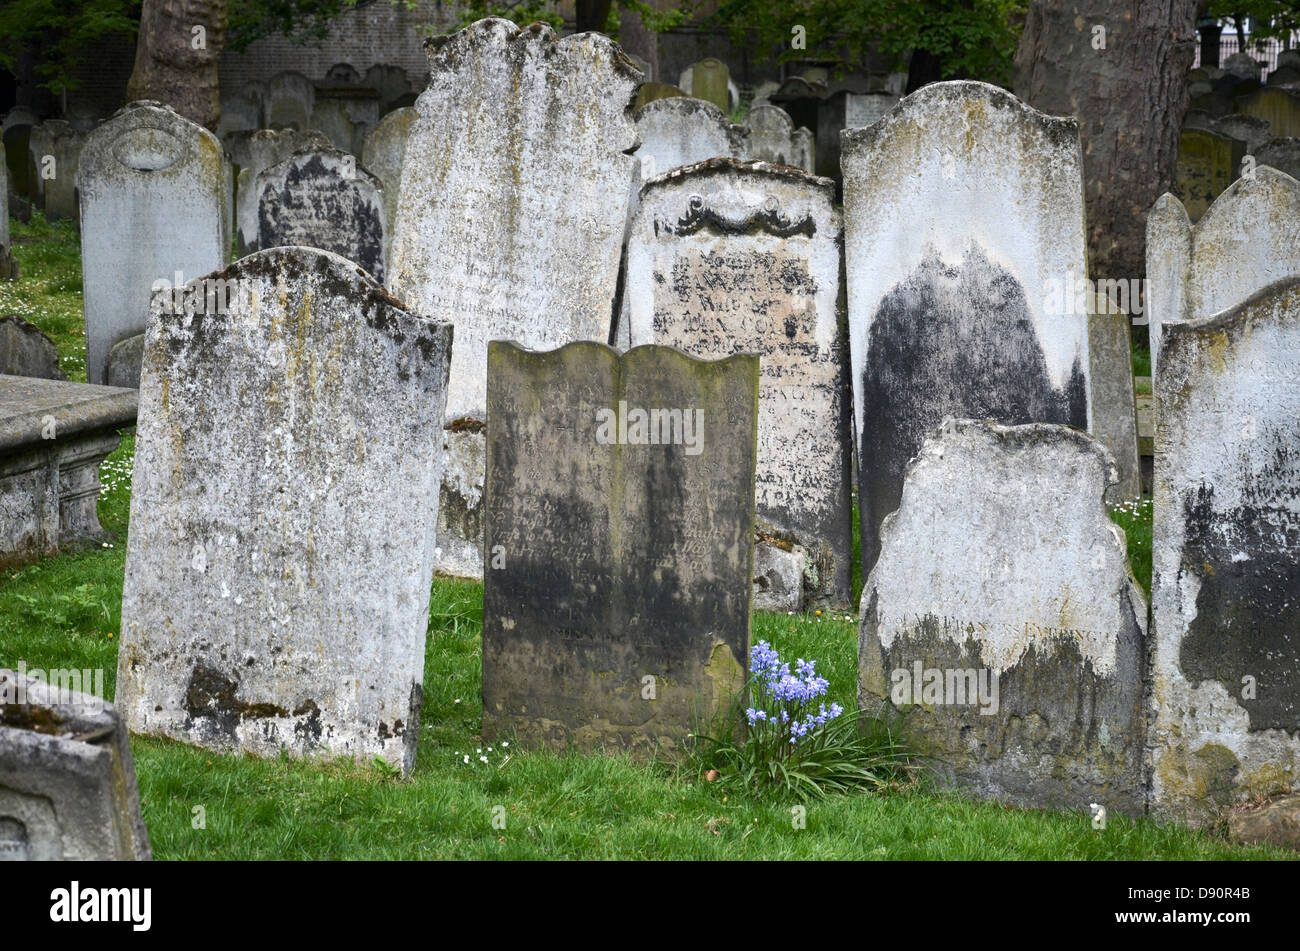 Headstones in Bunhill Fields Burial Ground, London. - Stock Image